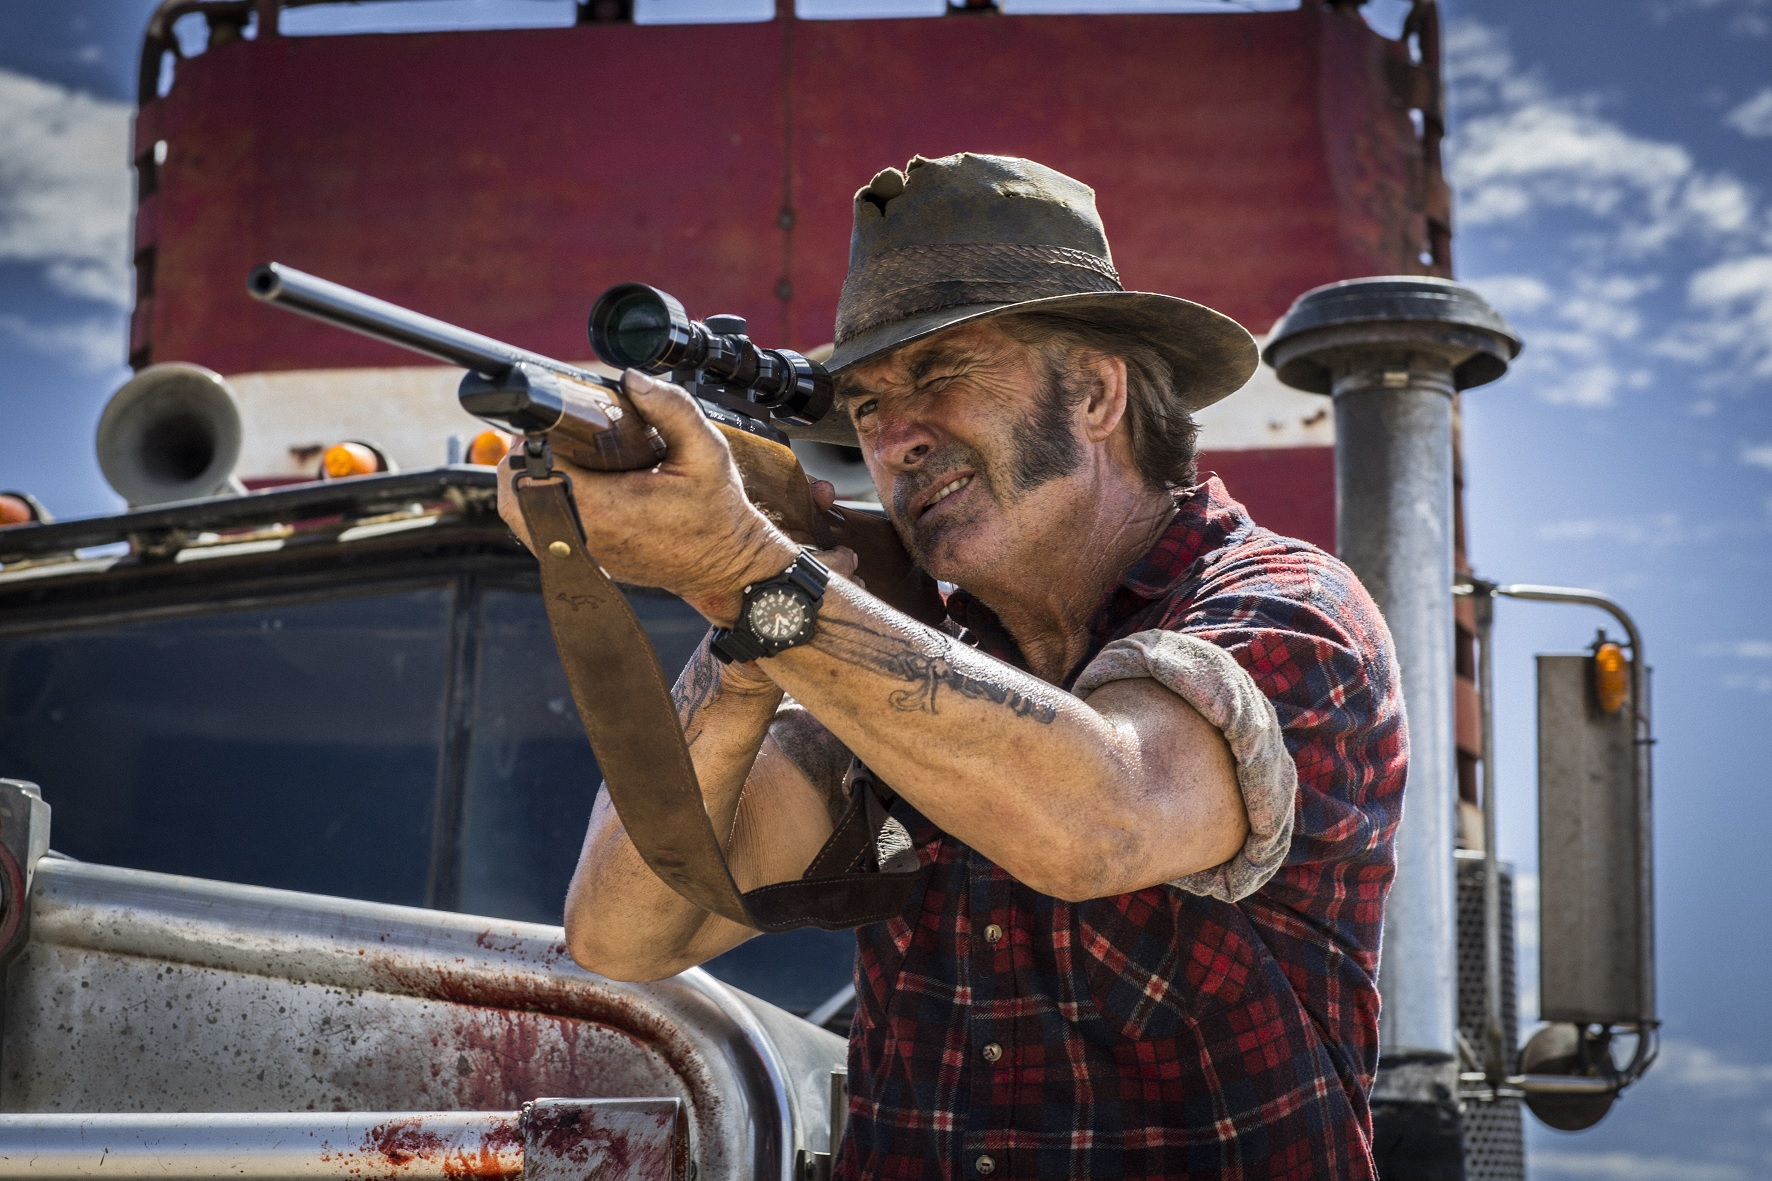 Wolf Creek 2 John Jarratt Enter in ShockYas Wolf Creek 2 Twitter Giveaway!